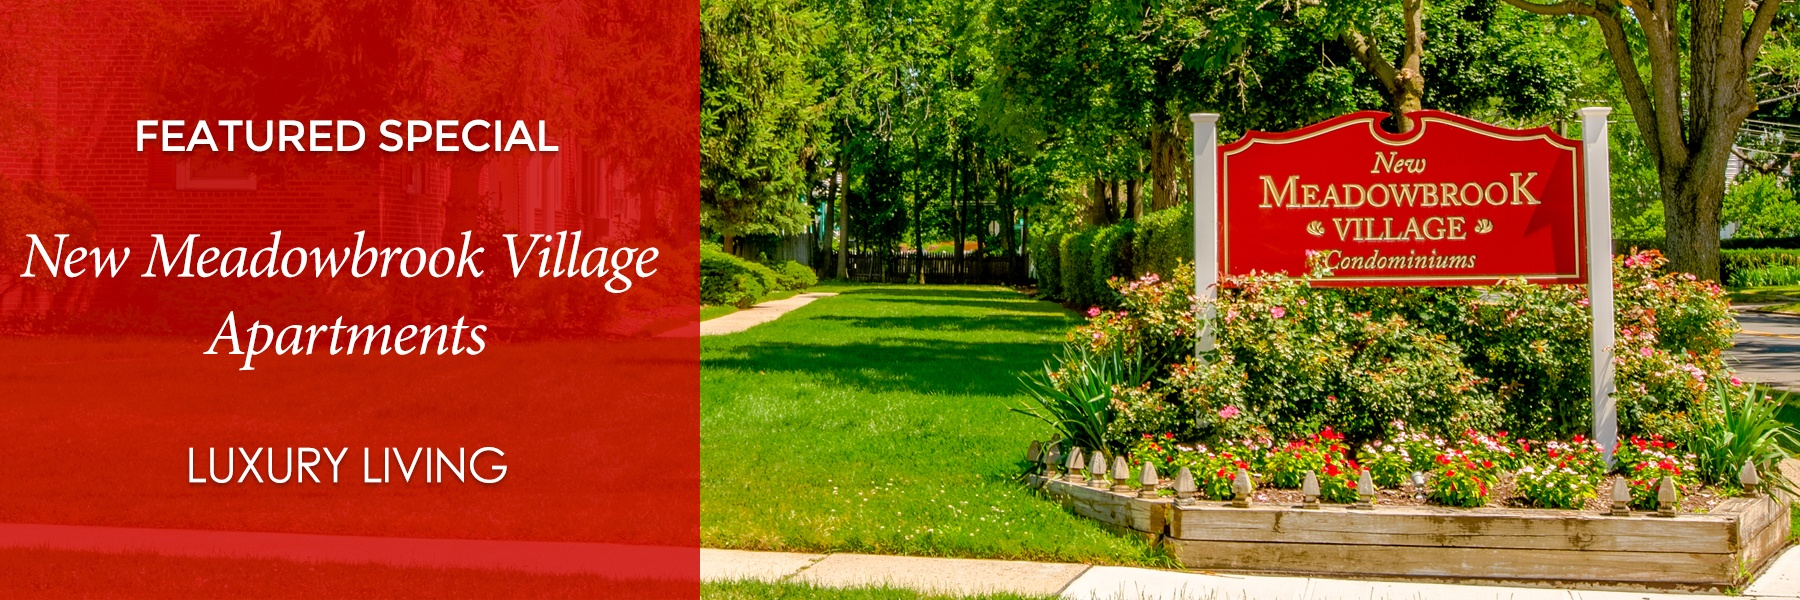 New Meadowbrook Village Apartments For Rent in Plainfield, NJ Specials